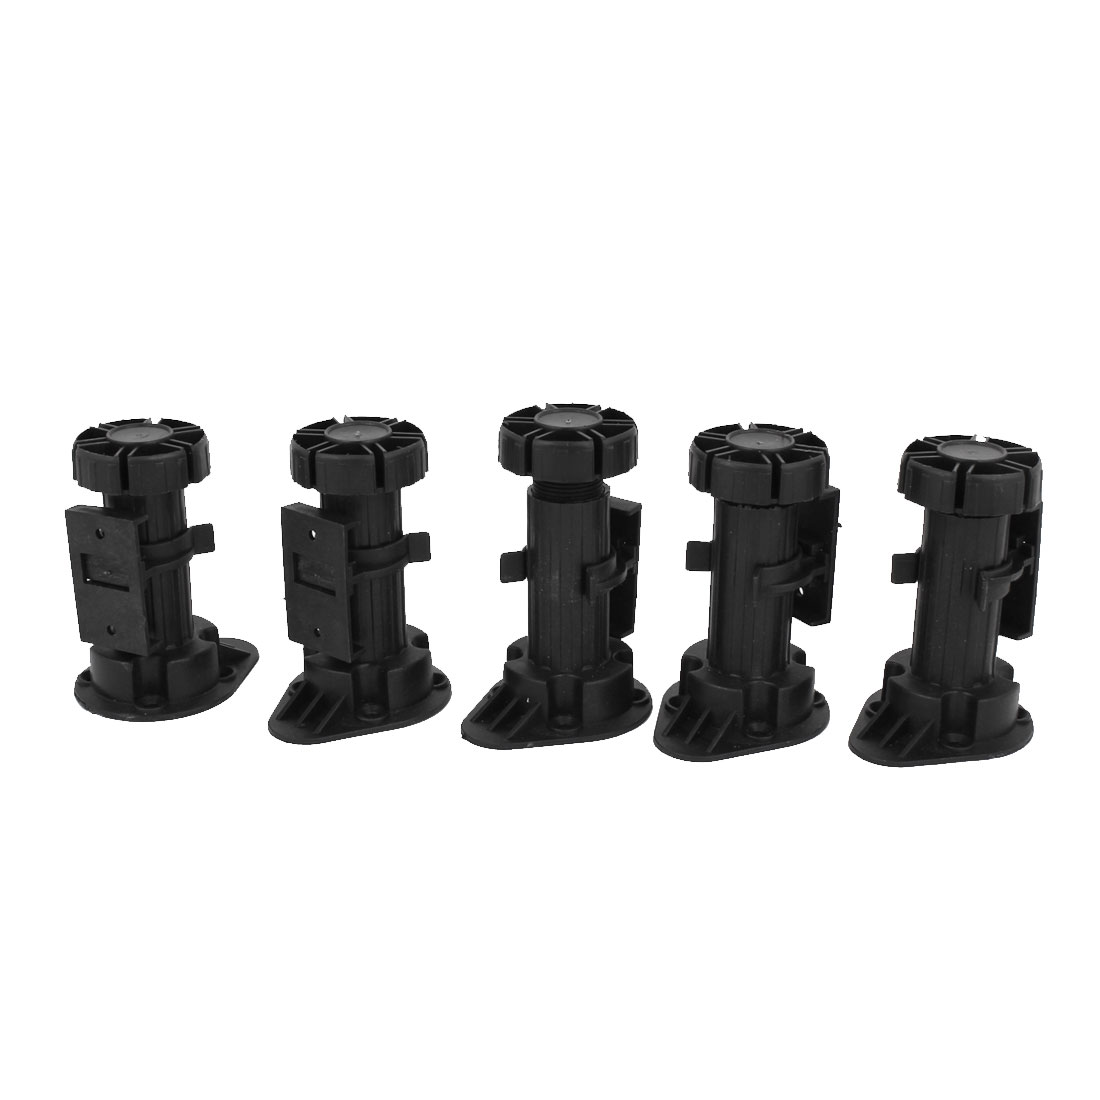 5Pcs Adjustable Height Black Plastic Cabinet Cupboard Foot Leg for Kitchen Bathroom